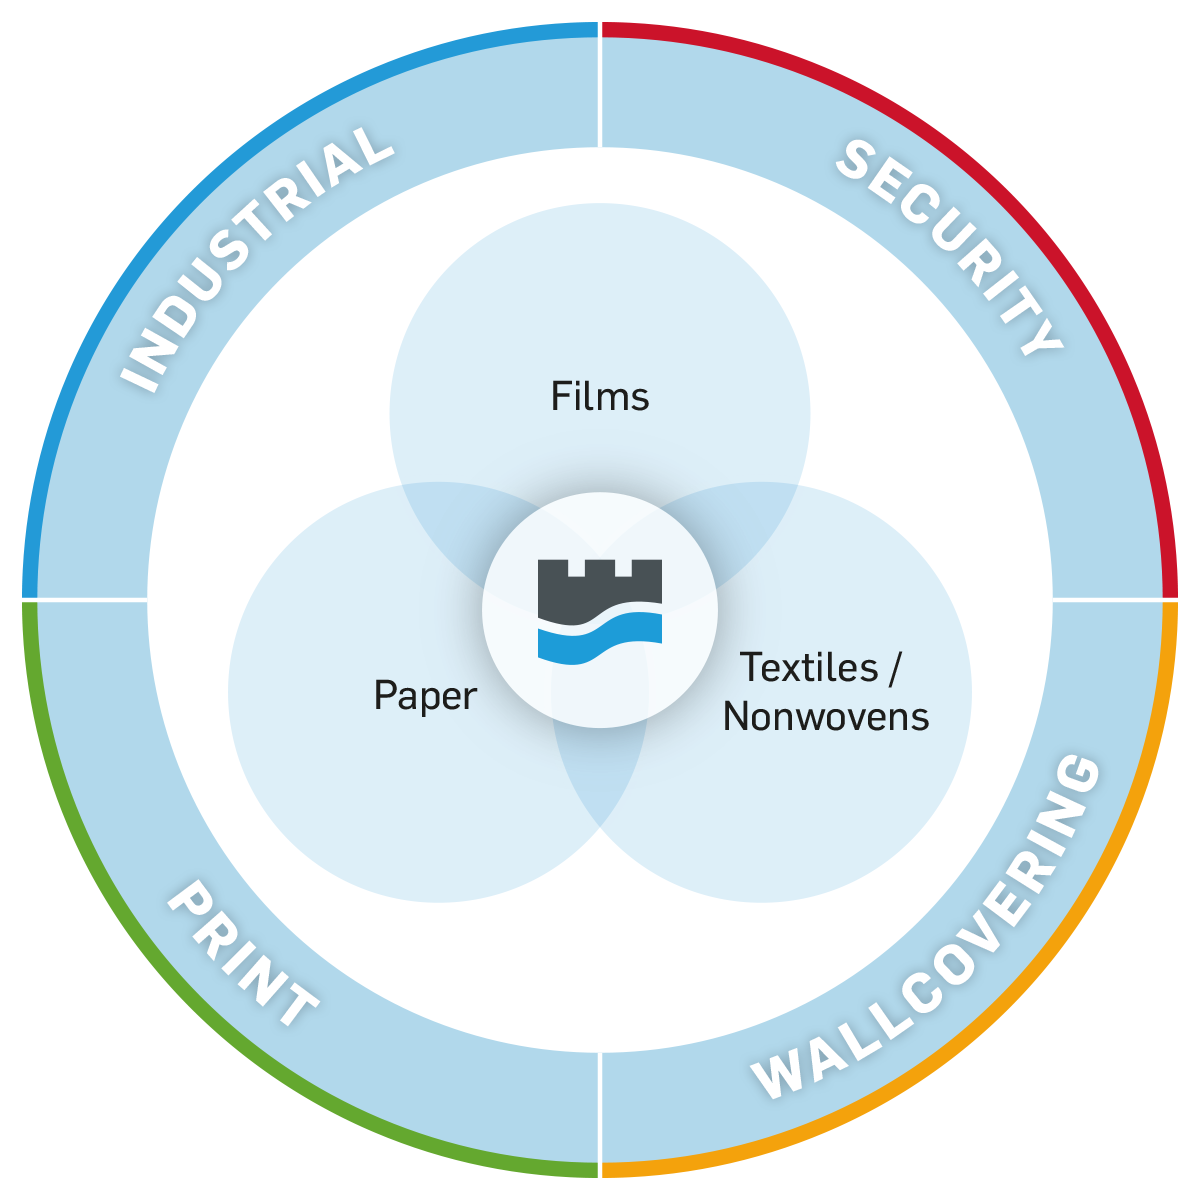 Lahnpaper: High-quality special papers and nonwovens